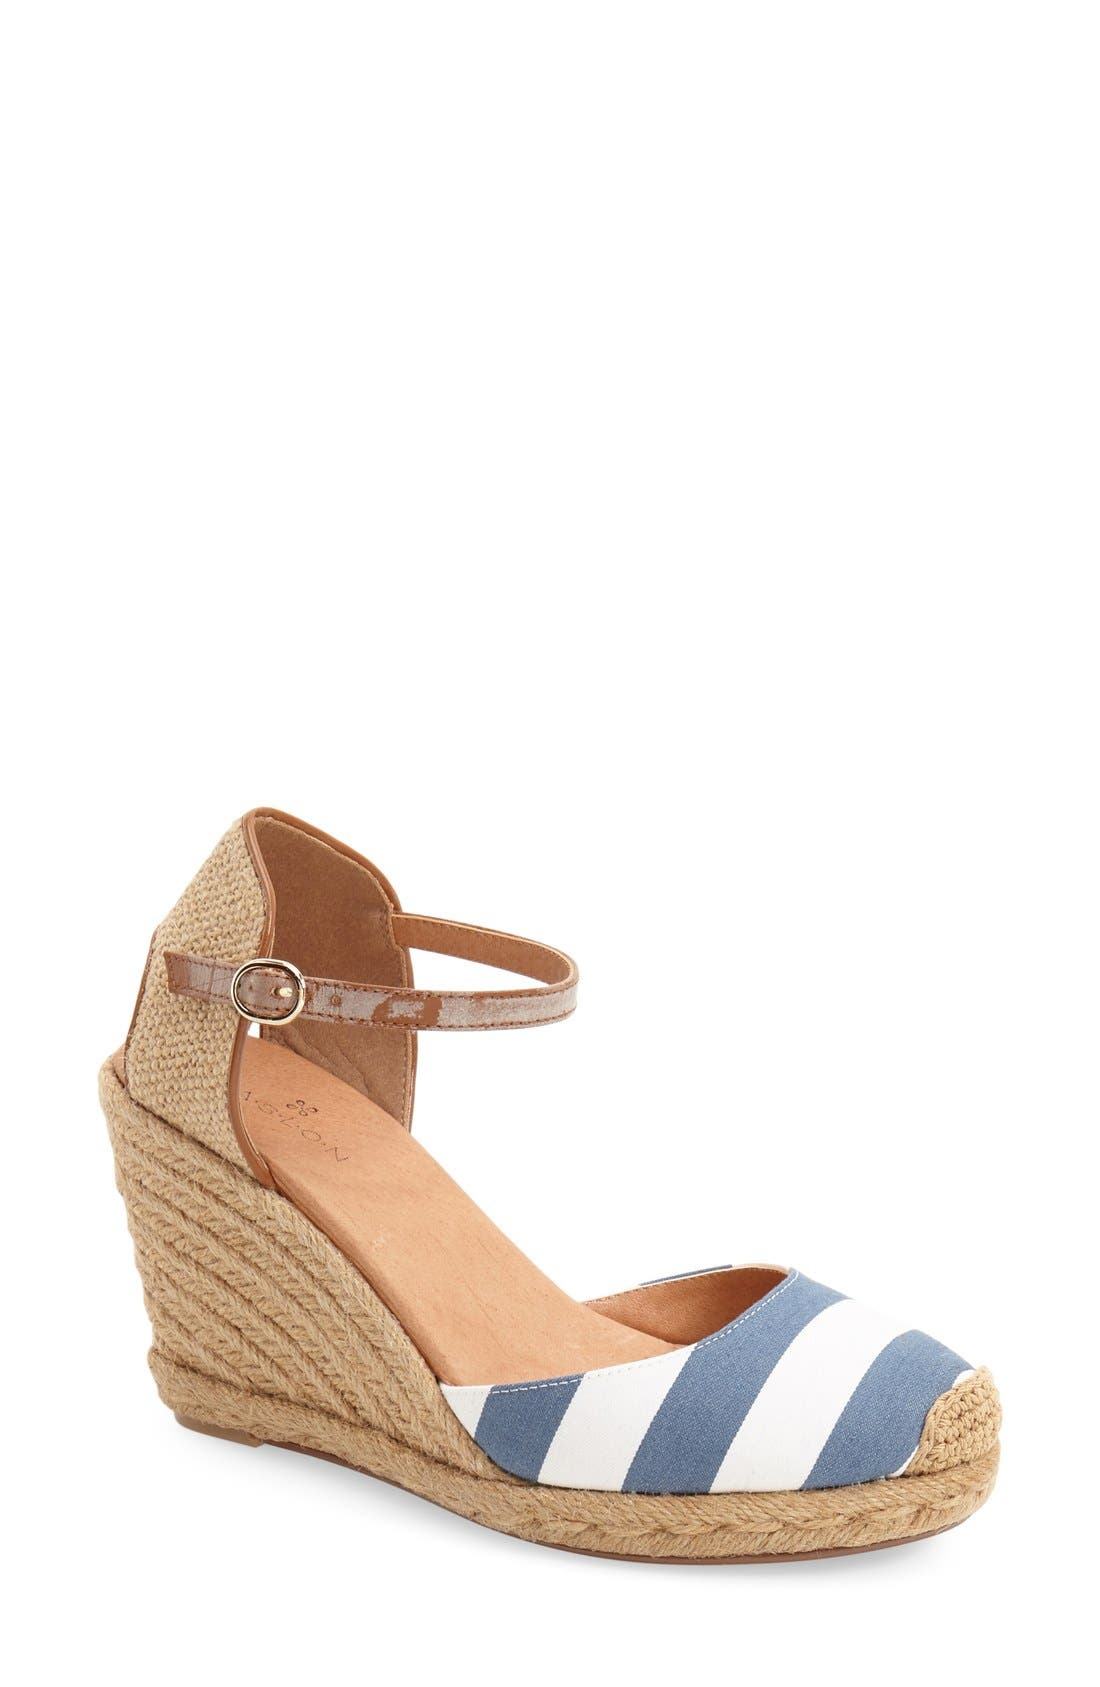 Alternate Image 1 Selected - Caslon® 'Blaire' Espadrille Wedge (Women)